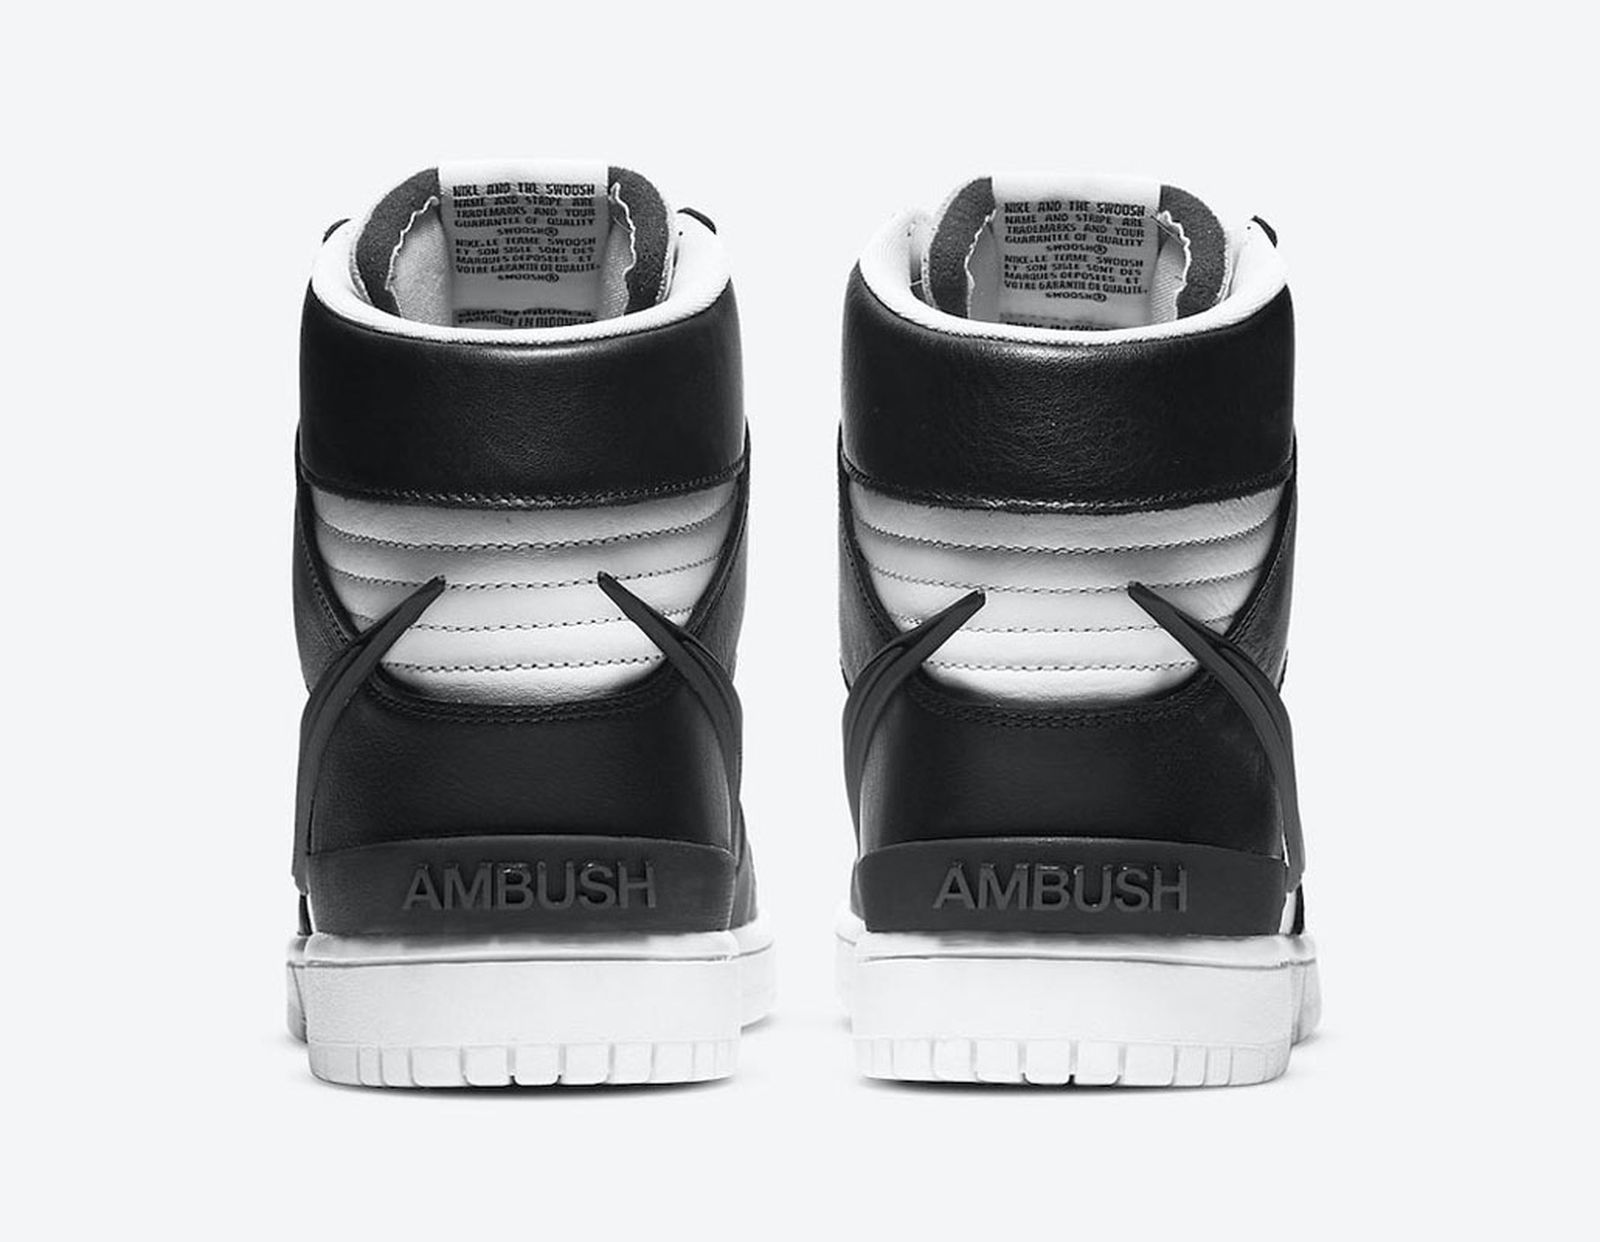 ambush-nike-dunk-high-black-white-release-date-price-05